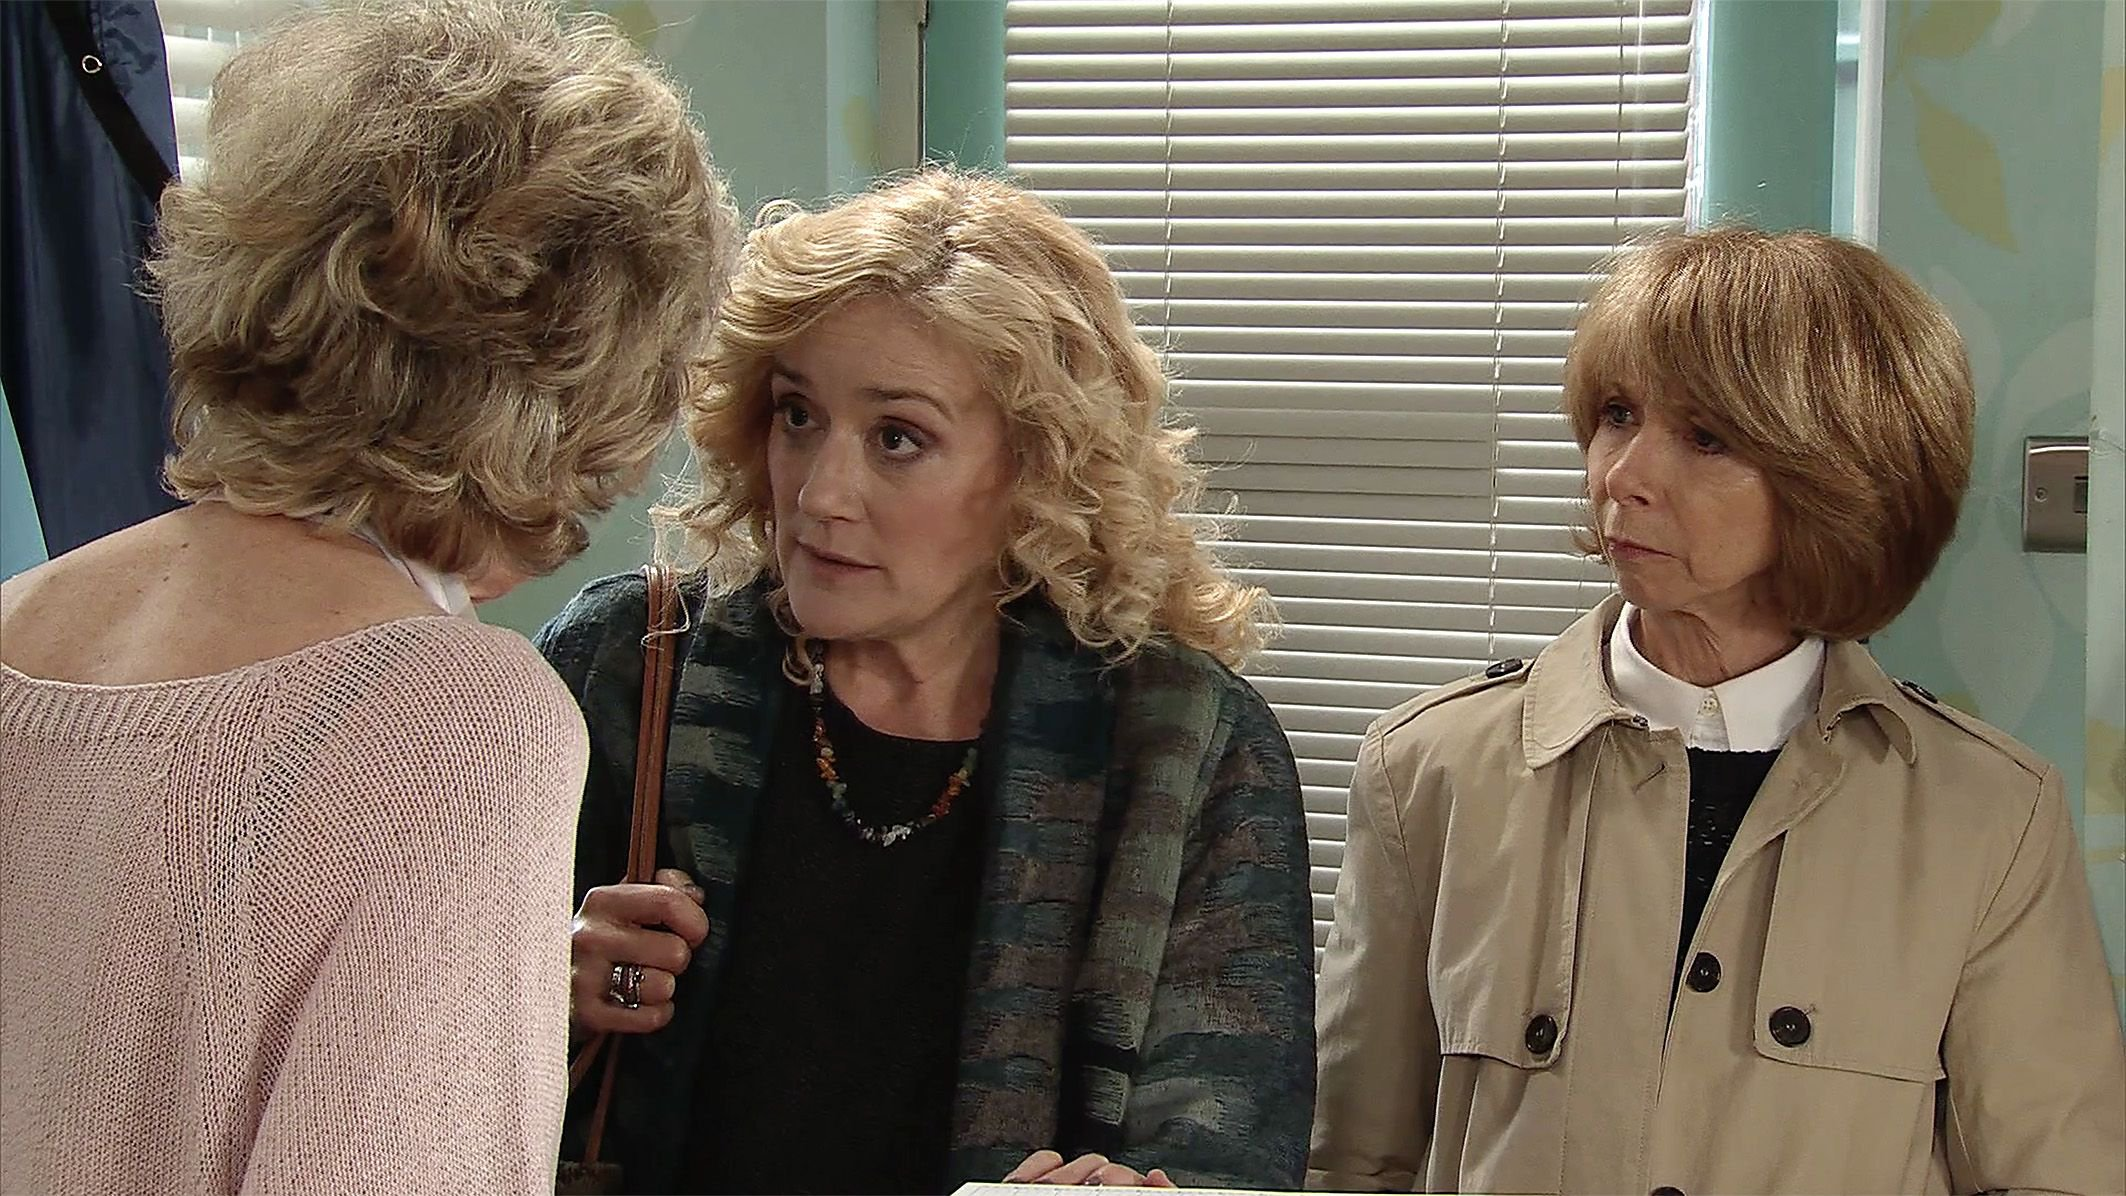 Editorial use only Mandatory Credit: Photo by ITV/REX/Shutterstock (9454936b) Ep 9402 Monday 12th March 2018 - 2nd Ep Despite Gail Rodwell, as played by Helen Worth, and Maria Connor, as played by Samia Longchambon, telling her the clairvoyant Rosemary, as played by Sophie Thompson, is a fake Audrey Roberts, as played by Sue Nicholls, is convinced she is the real deal and makes a booking with her. 'Coronation Street' TV Series UK - 2018